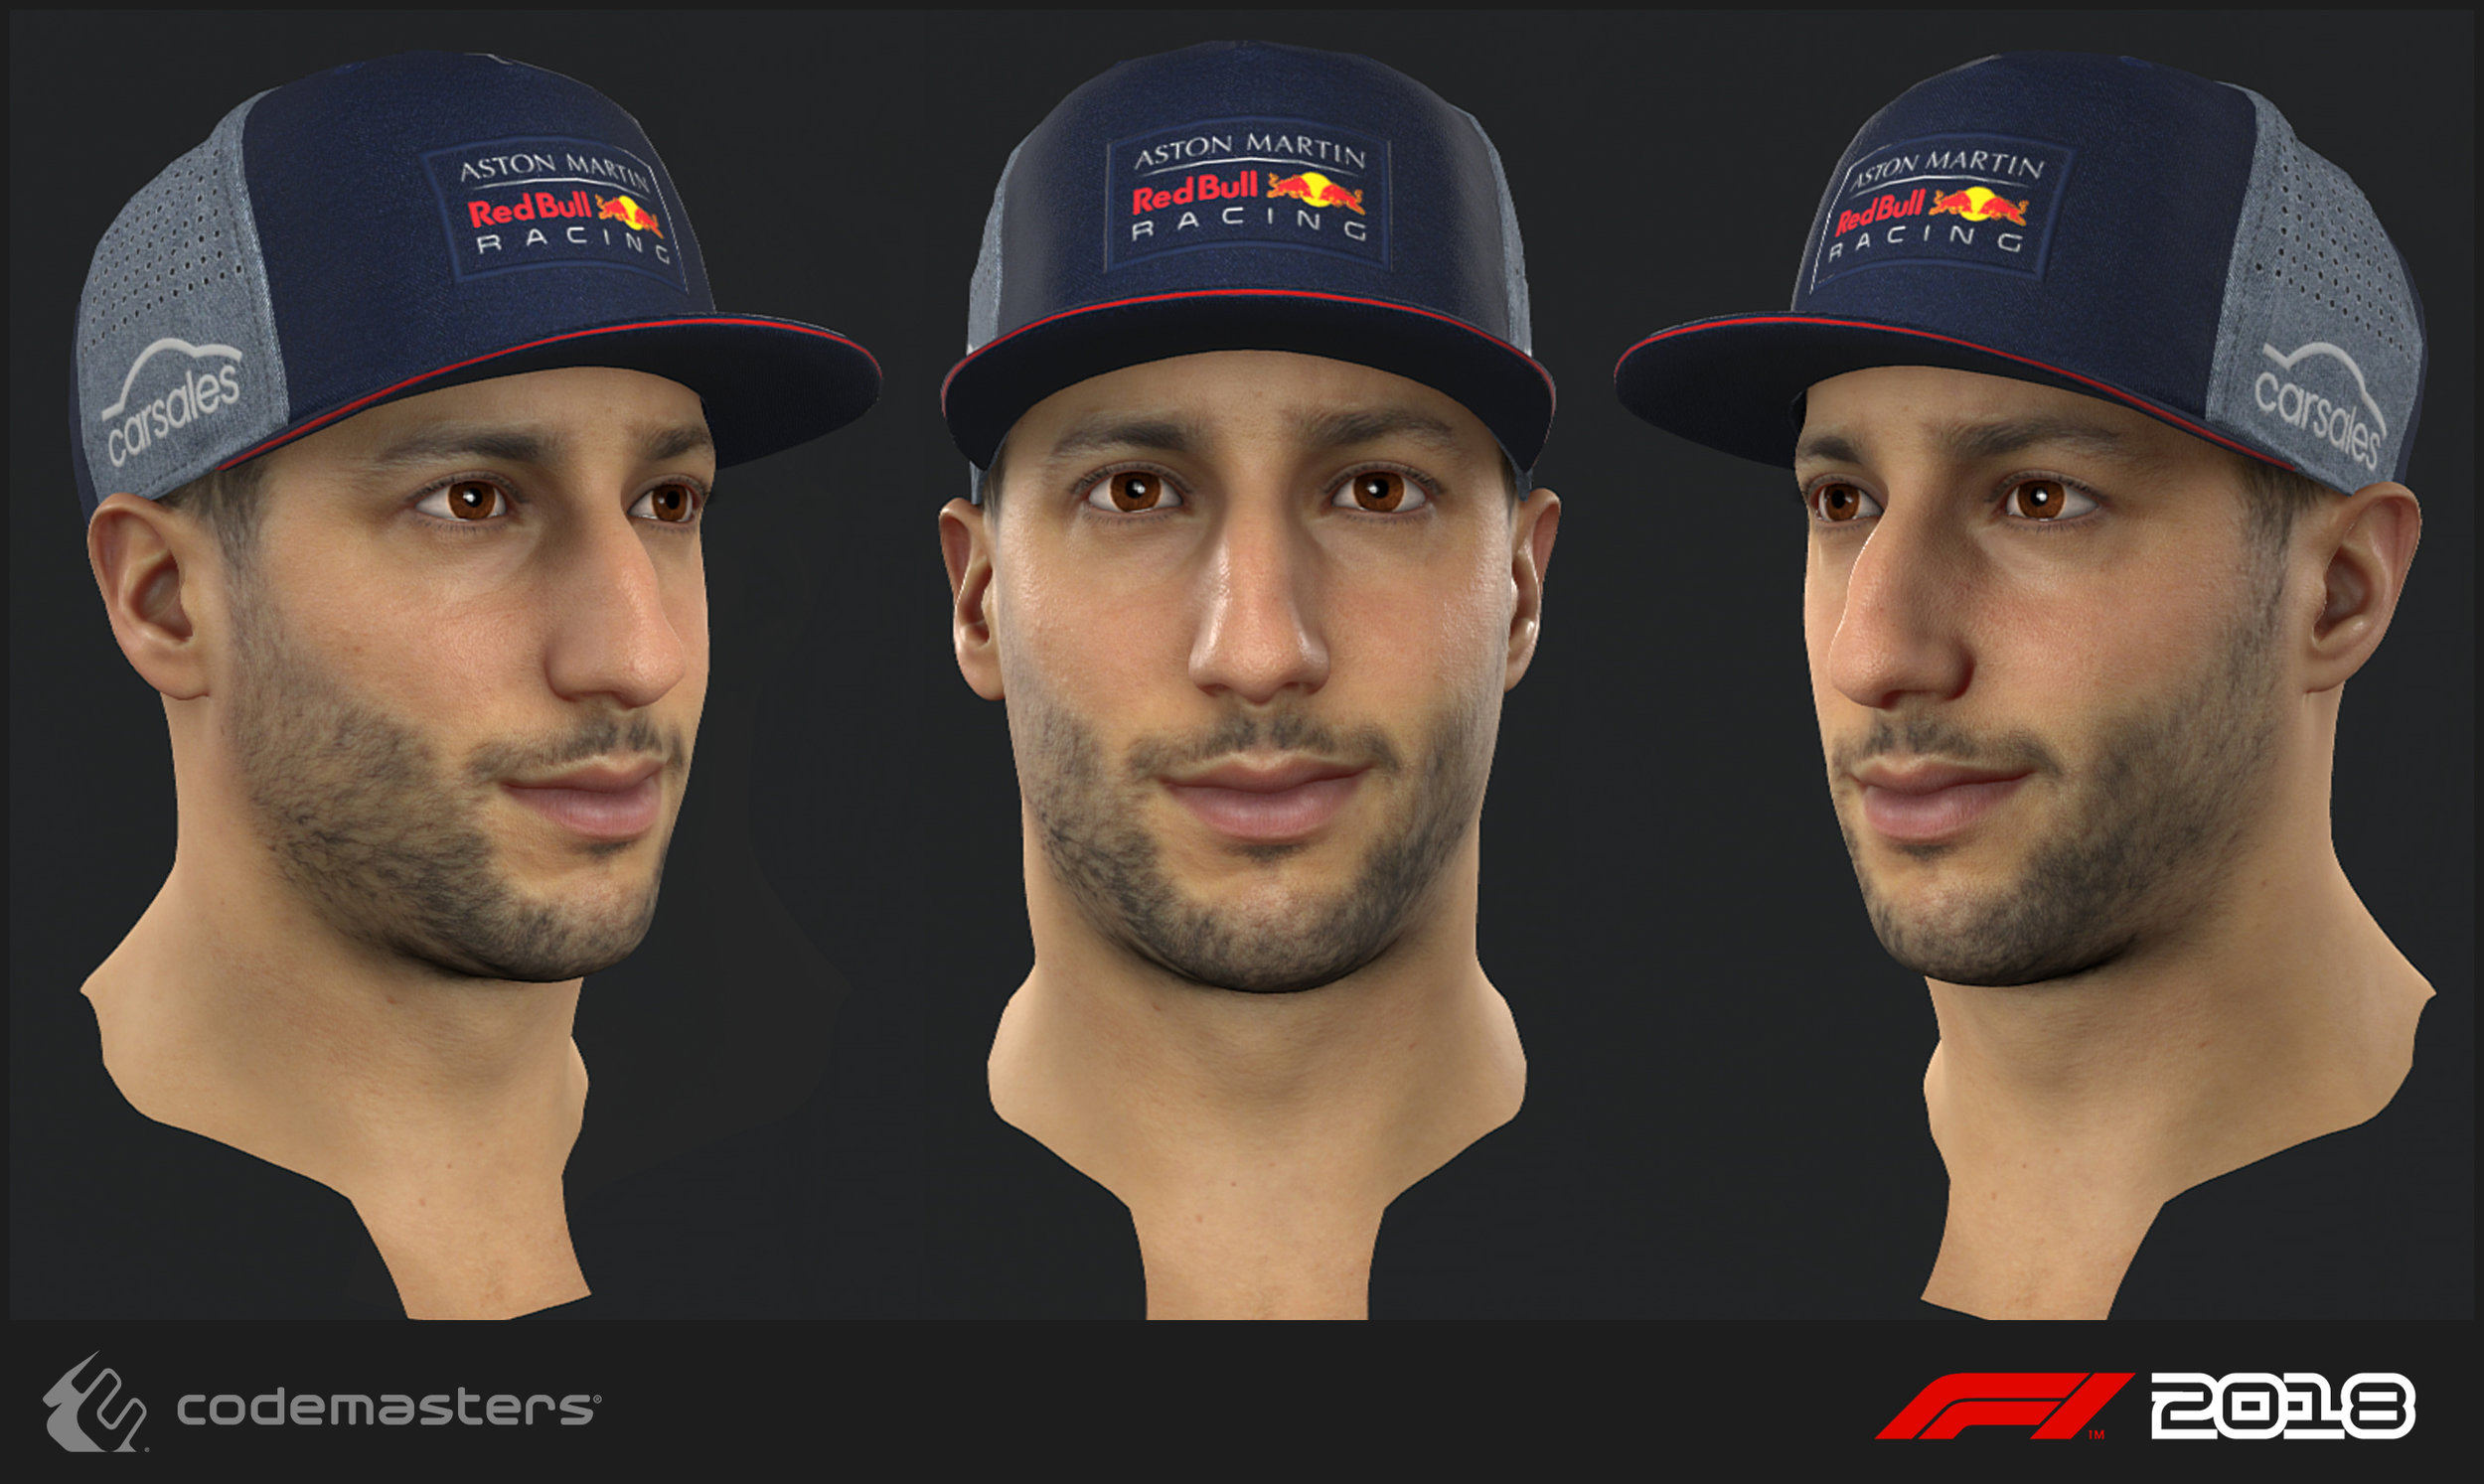 Daniel Ricciardo. Responsibilities: high poly creation, texture creation for the head. My lead Mark Hancock was responsible for a 2018 update pass on the mesh and textures.